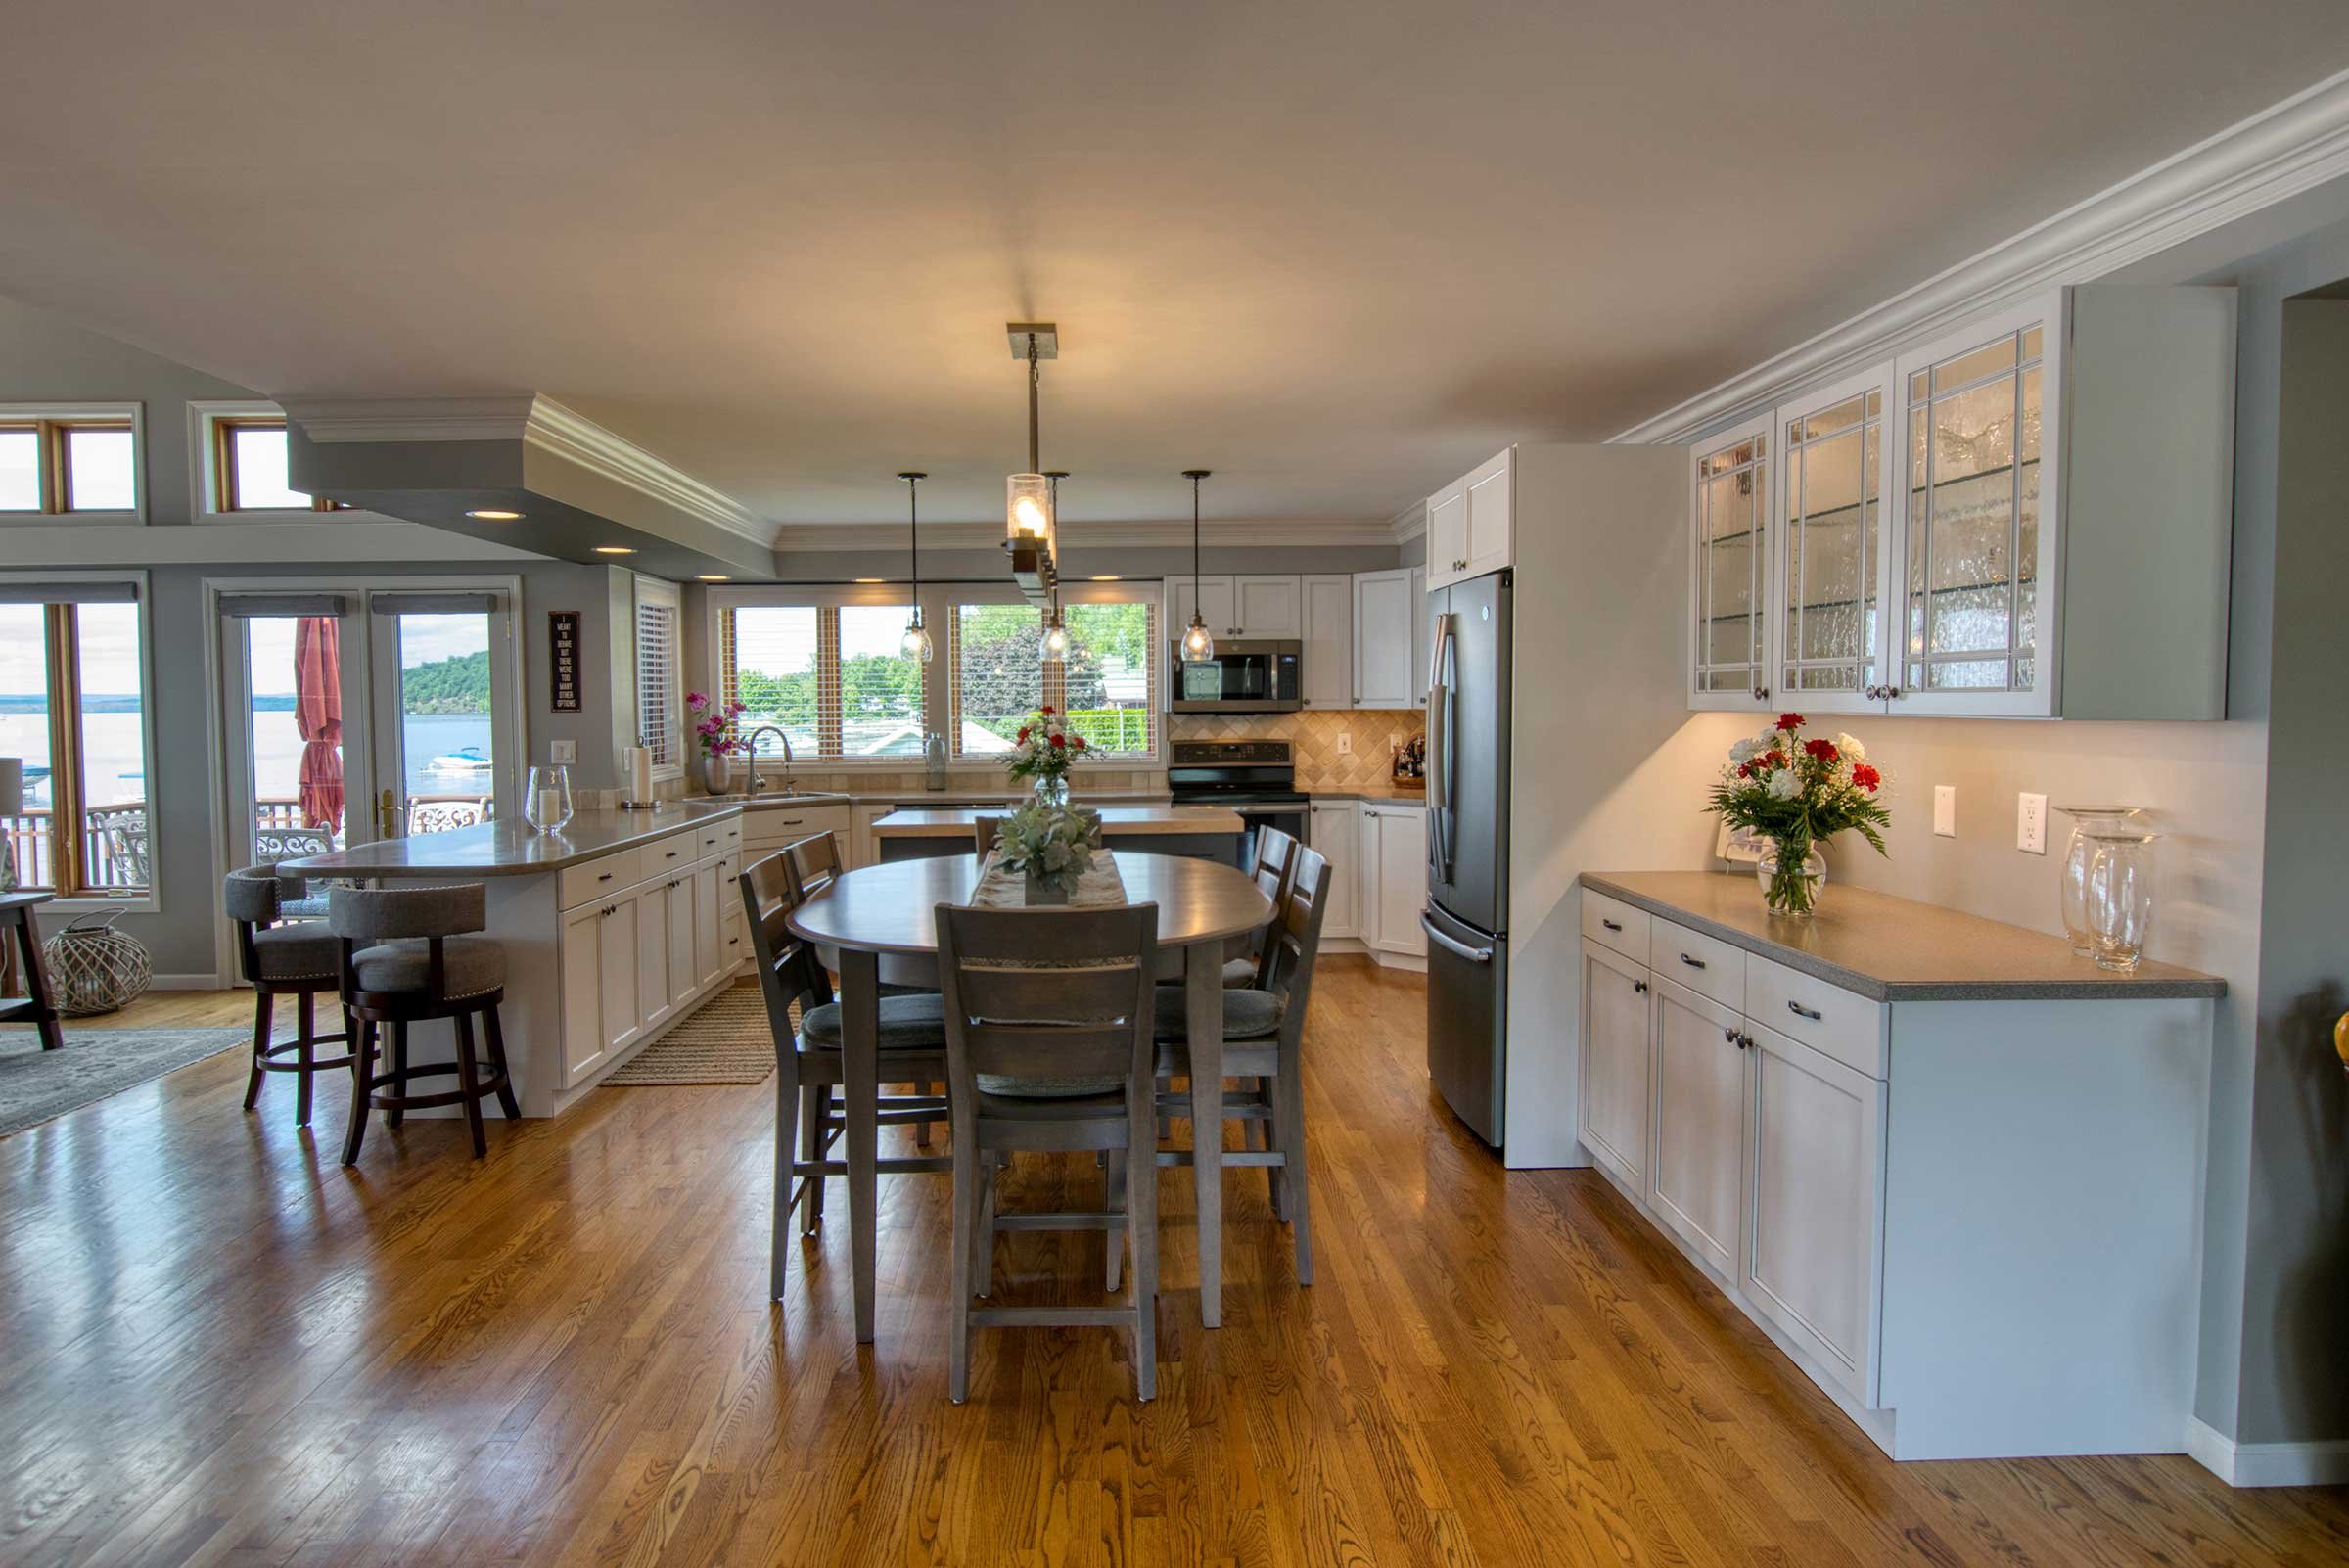 Long view from entryway through dining area into kitchen with refaced cabinets and lake view outside of windows.